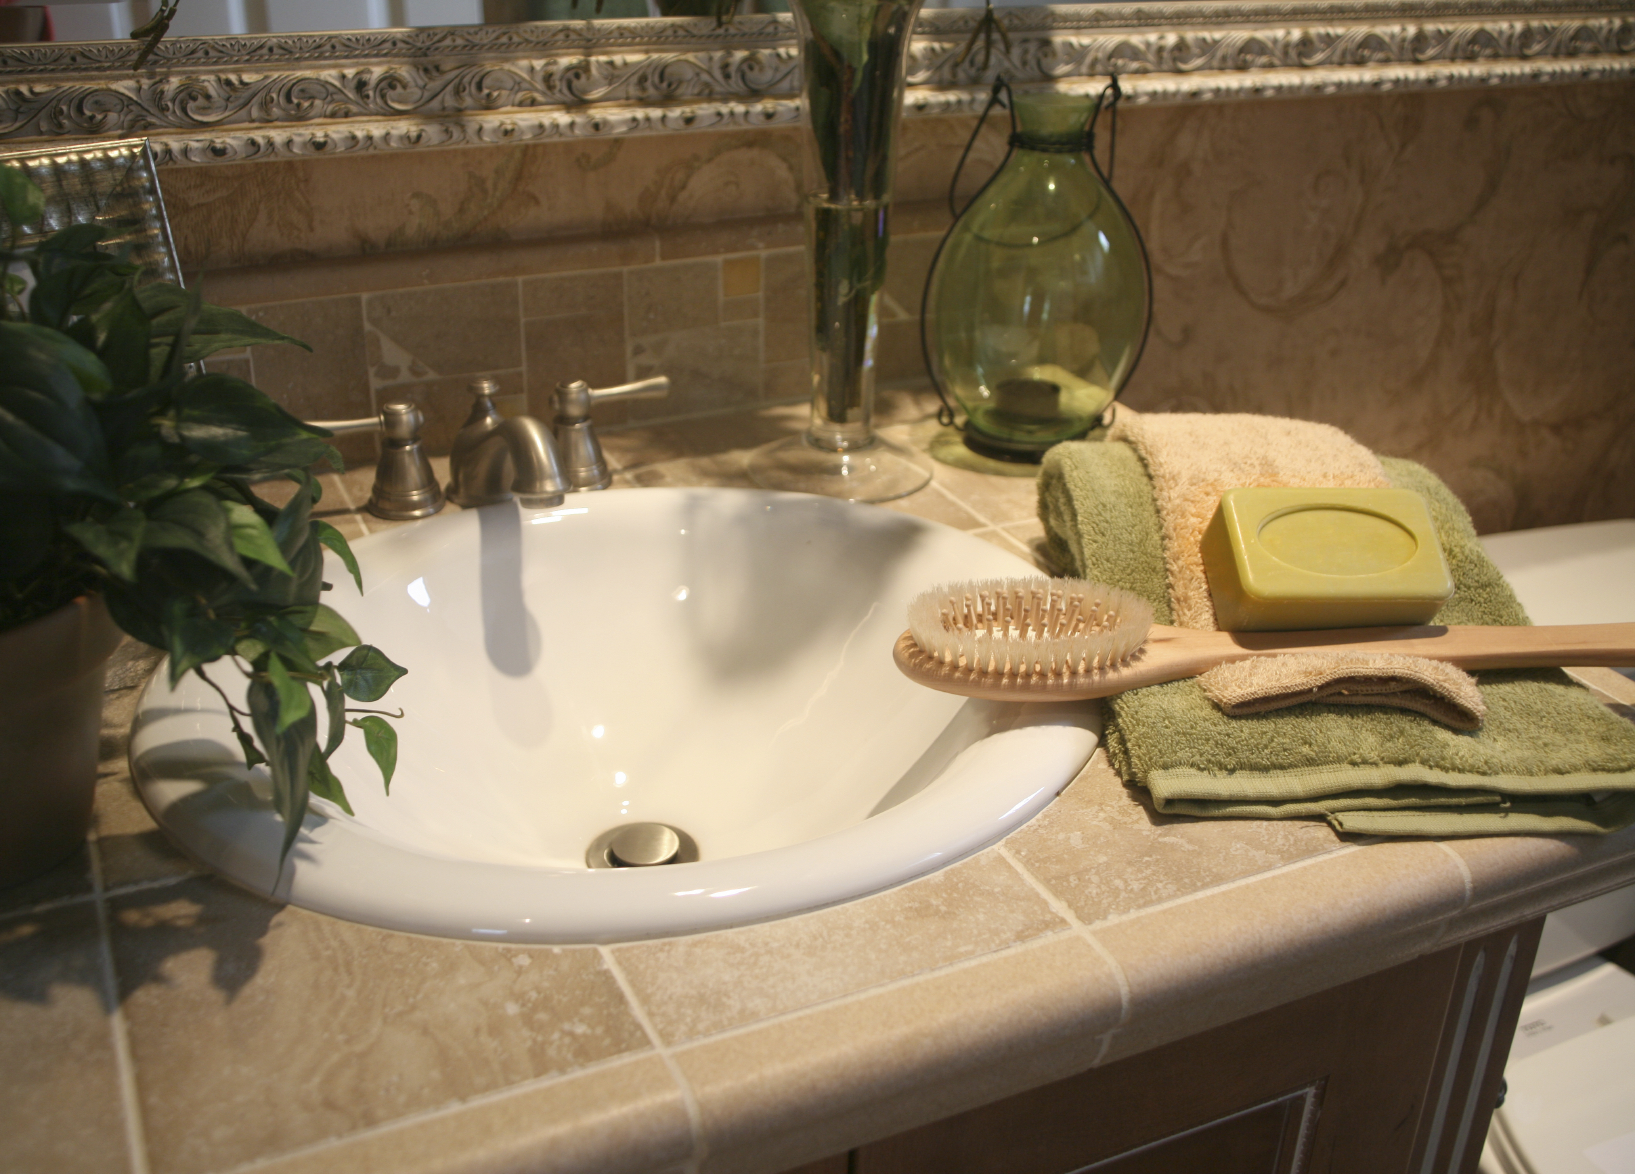 Bathroom Makeover Ideas: Budget, Layout, Color